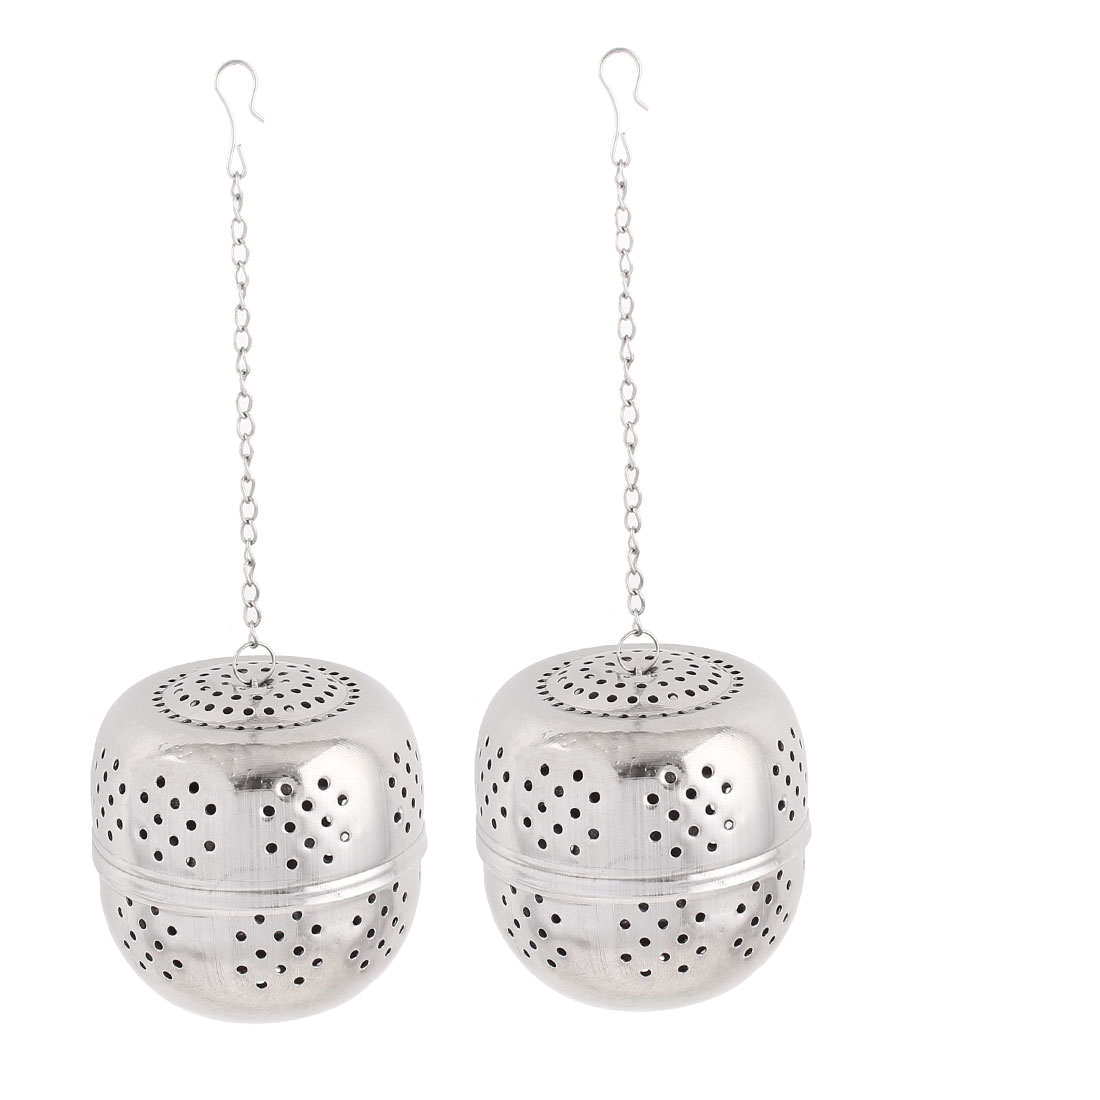 2pcs 65mm Dia Stainless Steel Ball Strainer Tea Leaf Spice Perfume Infuser